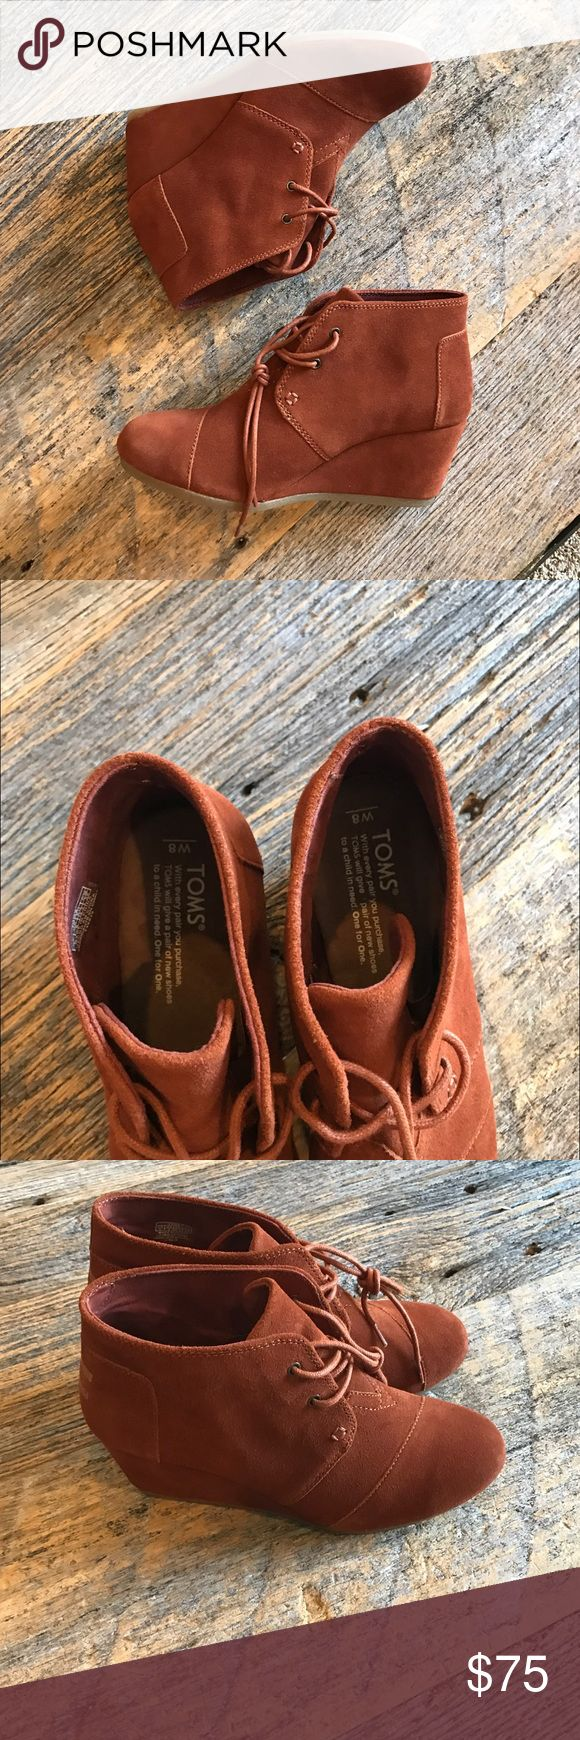 Toms Desert Wedges - Cognac Like new, only tried on. No box or trades. TOMS Shoes Ankle Boots & Booties